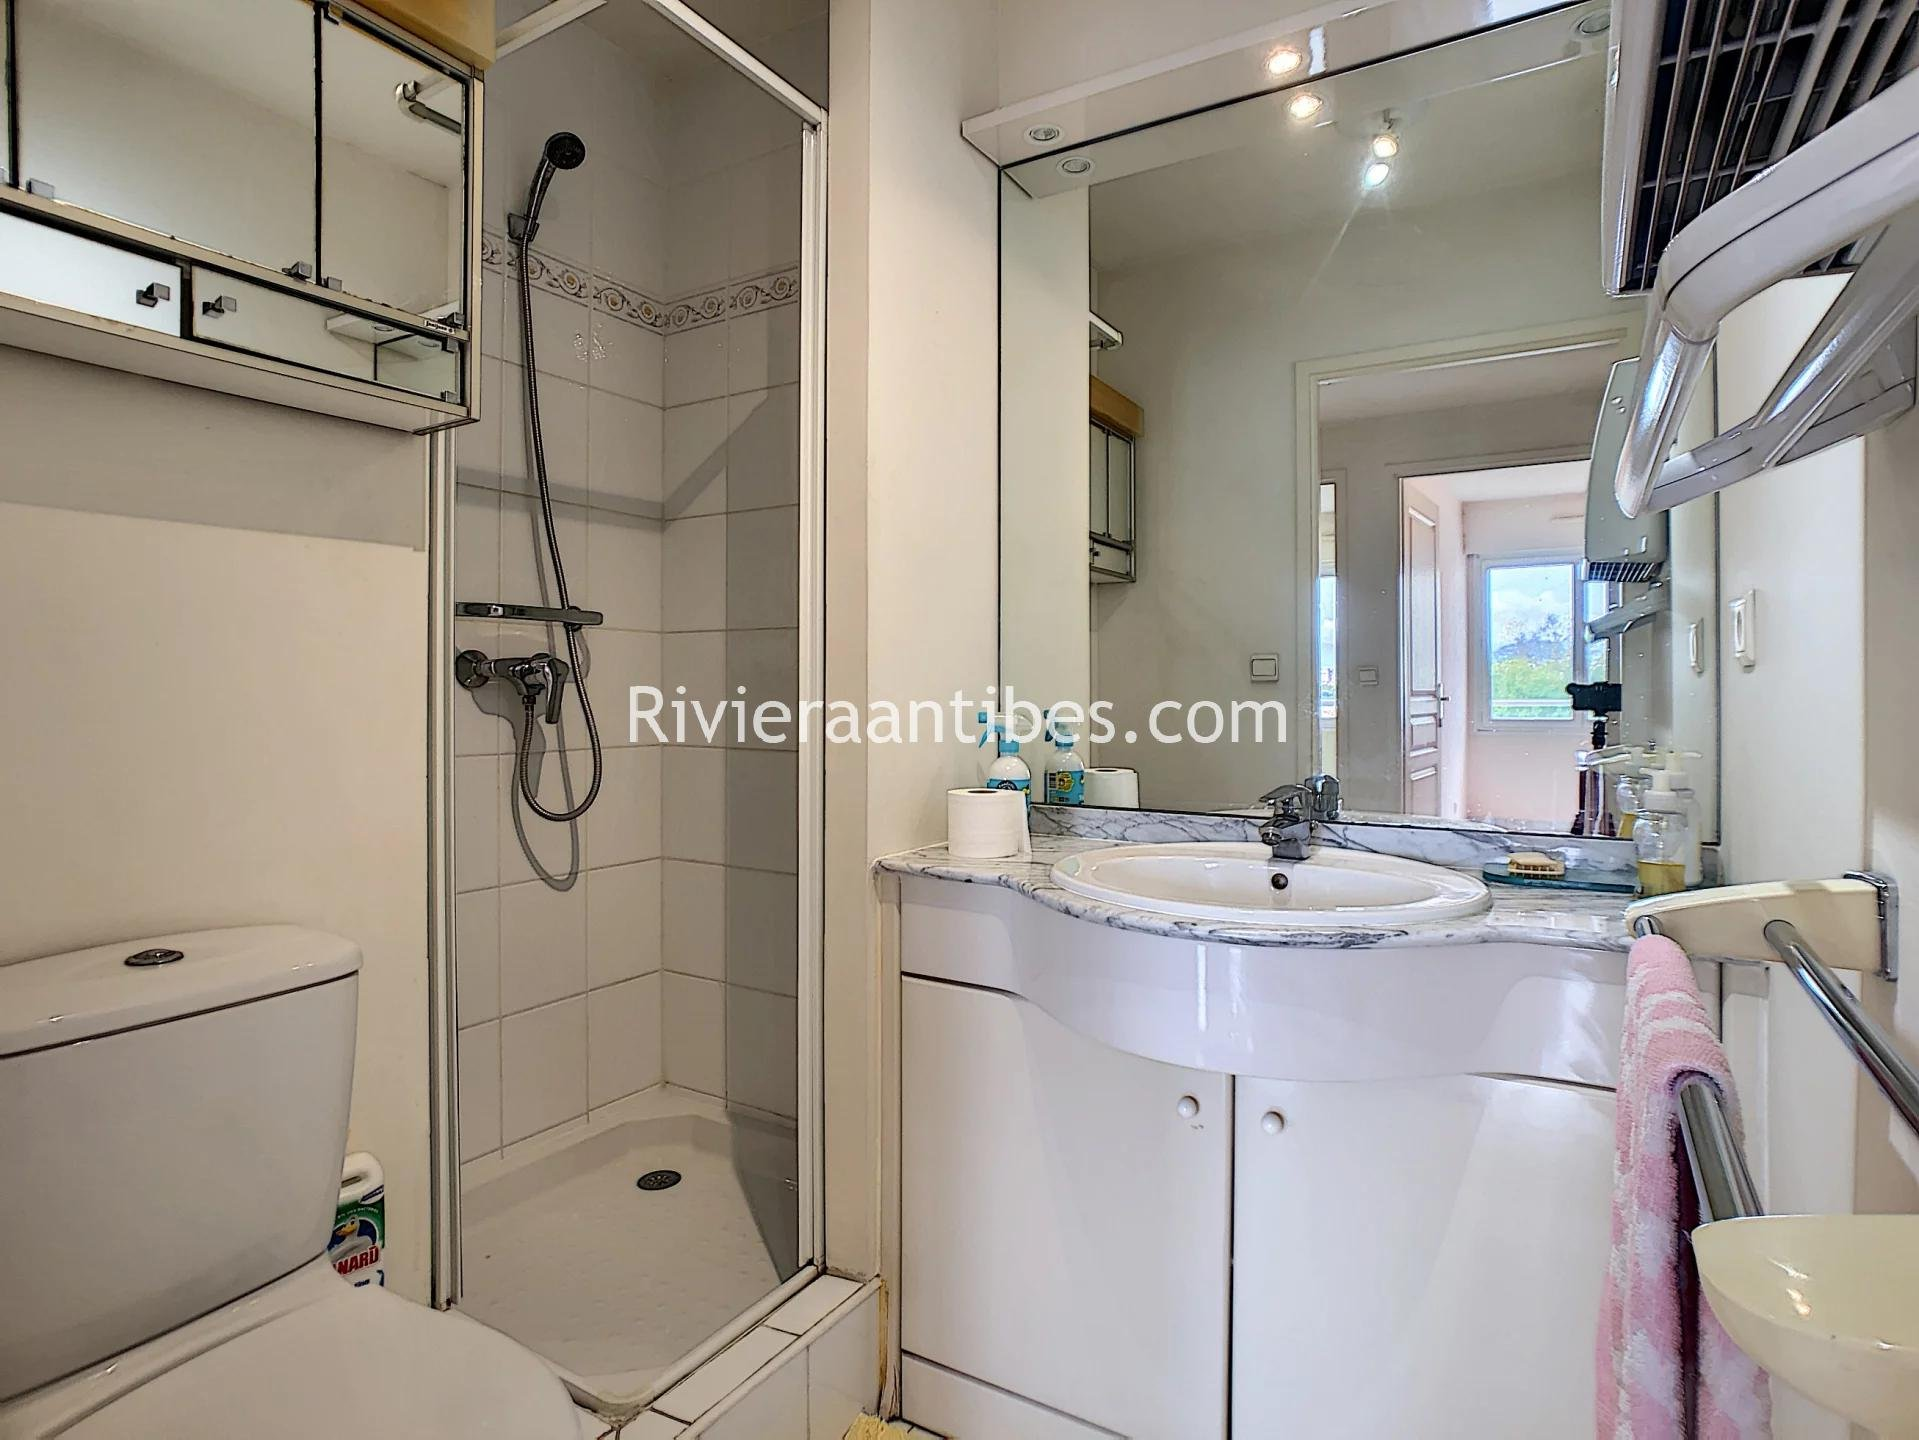 EXCLUSIVITE ANTIBES PROCHE PORT VAUBAN